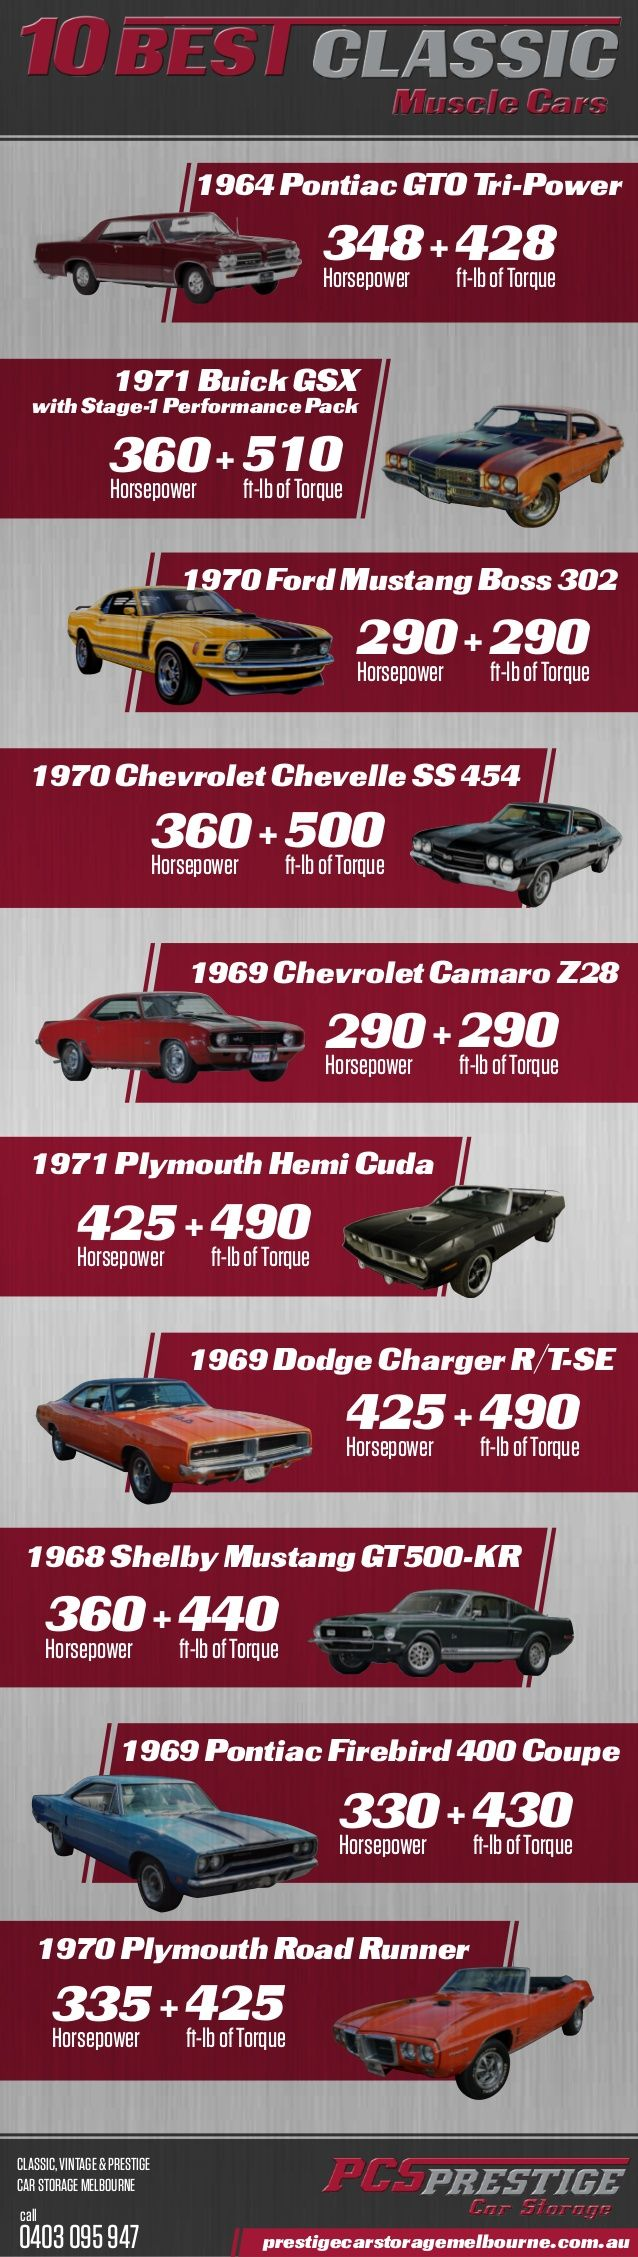 The 10 Best Classic Muscle Cars, infographic design for Prestige Car Storage